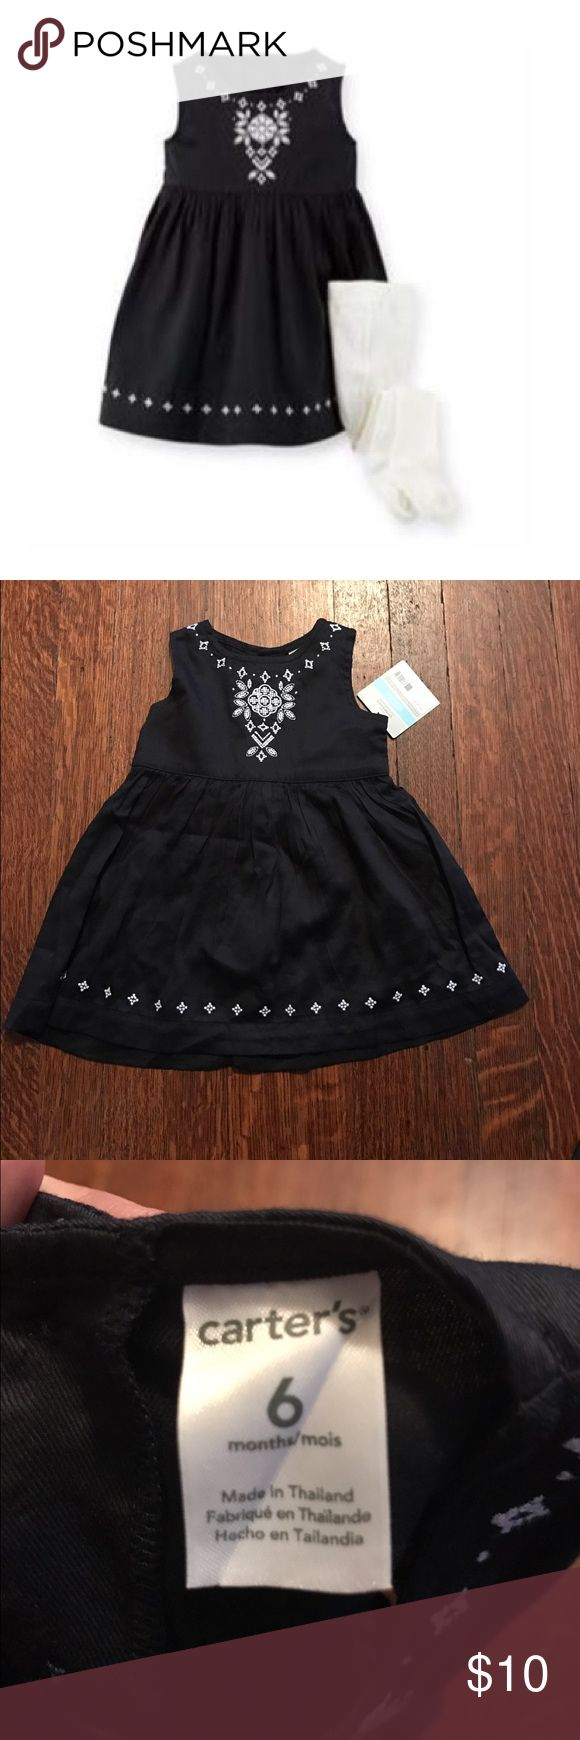 Black infant carter's dress Carter's Sateen Embroidered Dress •non-smoking home • Carter's Dresses Casual